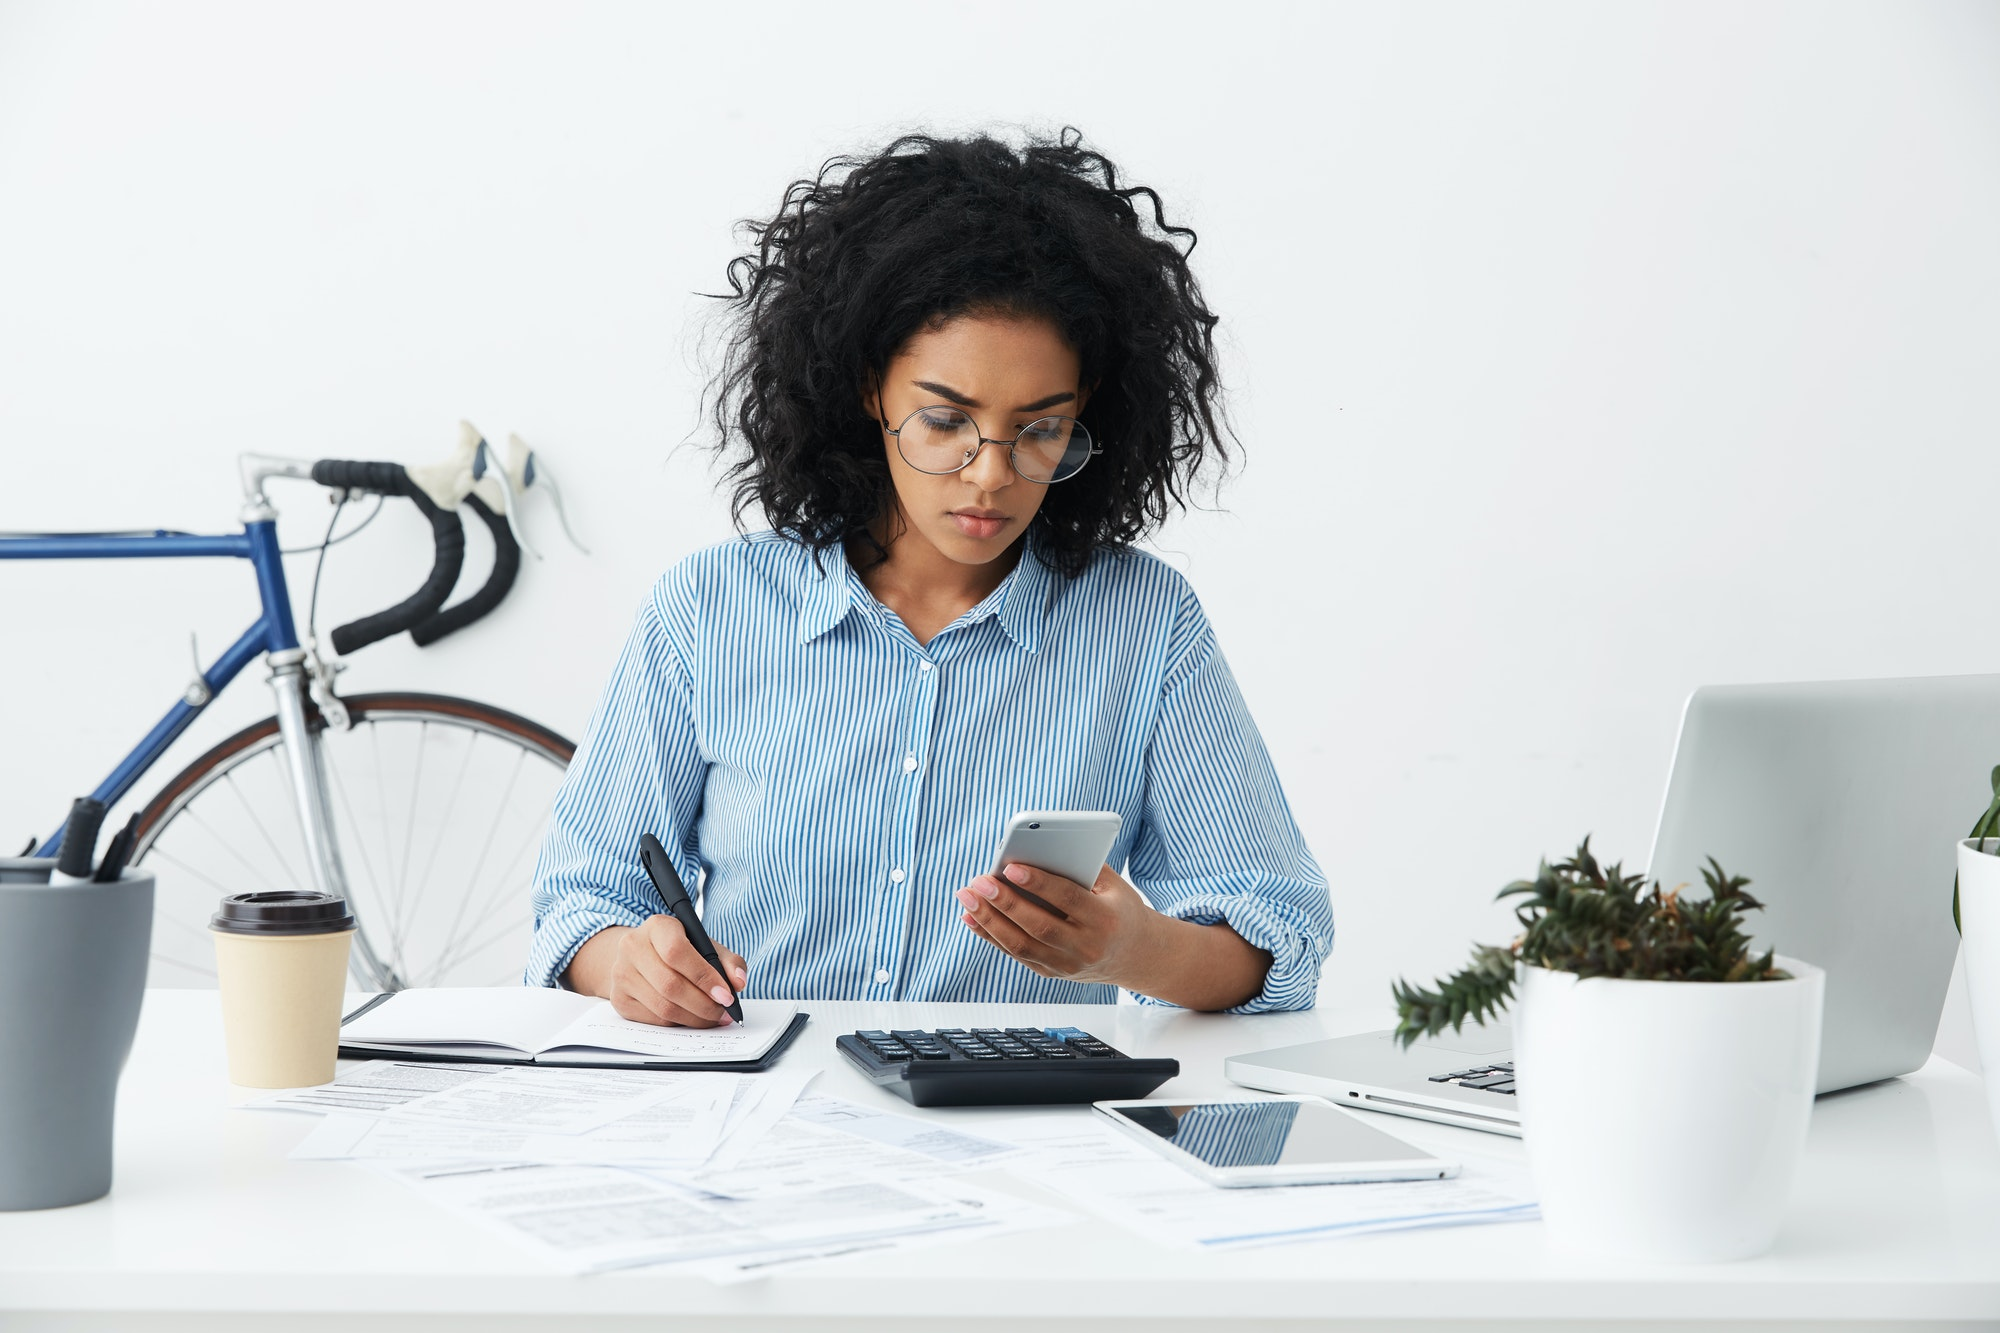 Savings, finances and economy. Concentrated female accountant or banker making calculations at workp